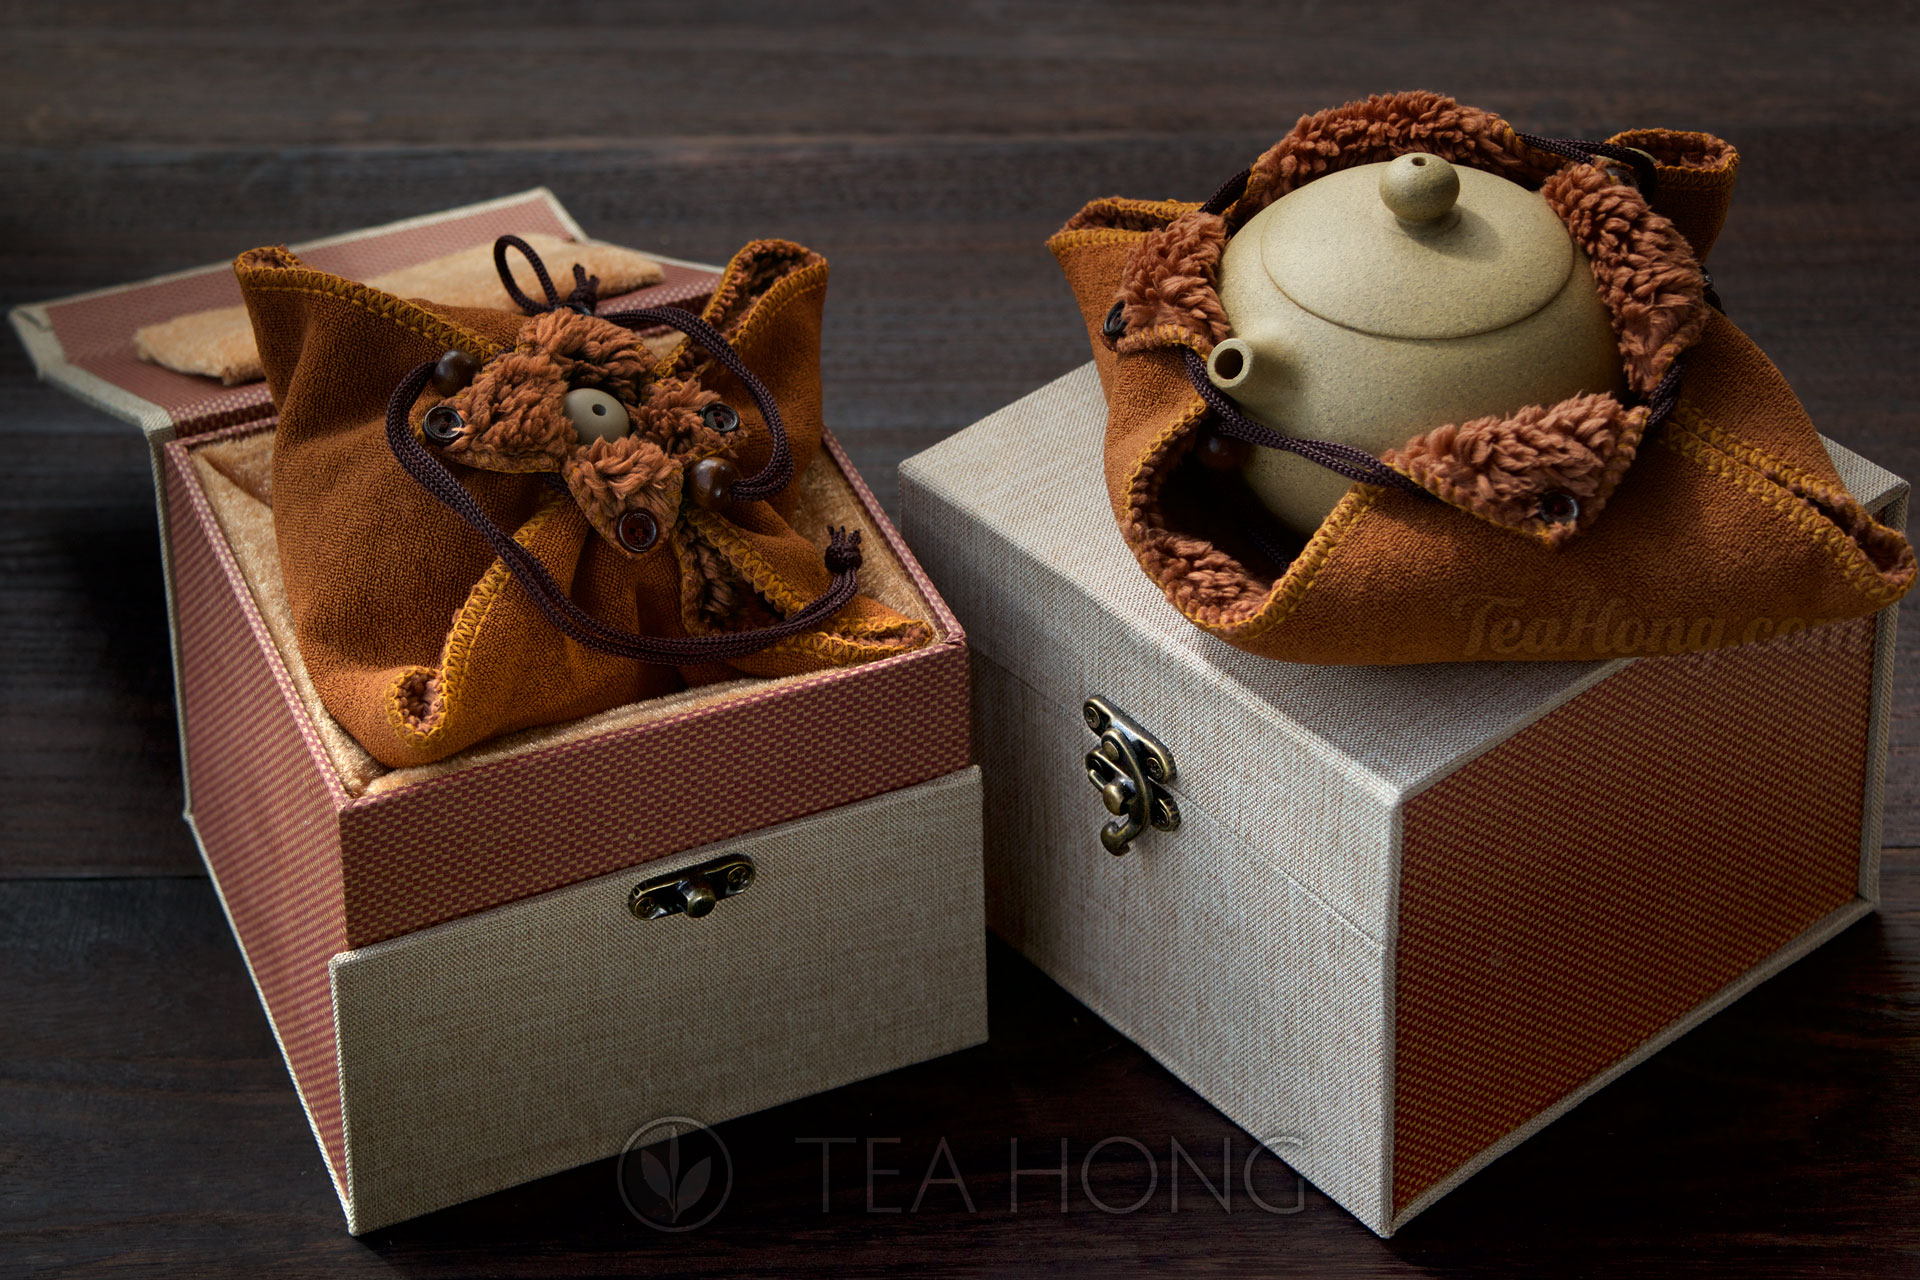 Collector box for Yea Hong's Yixing Teapots